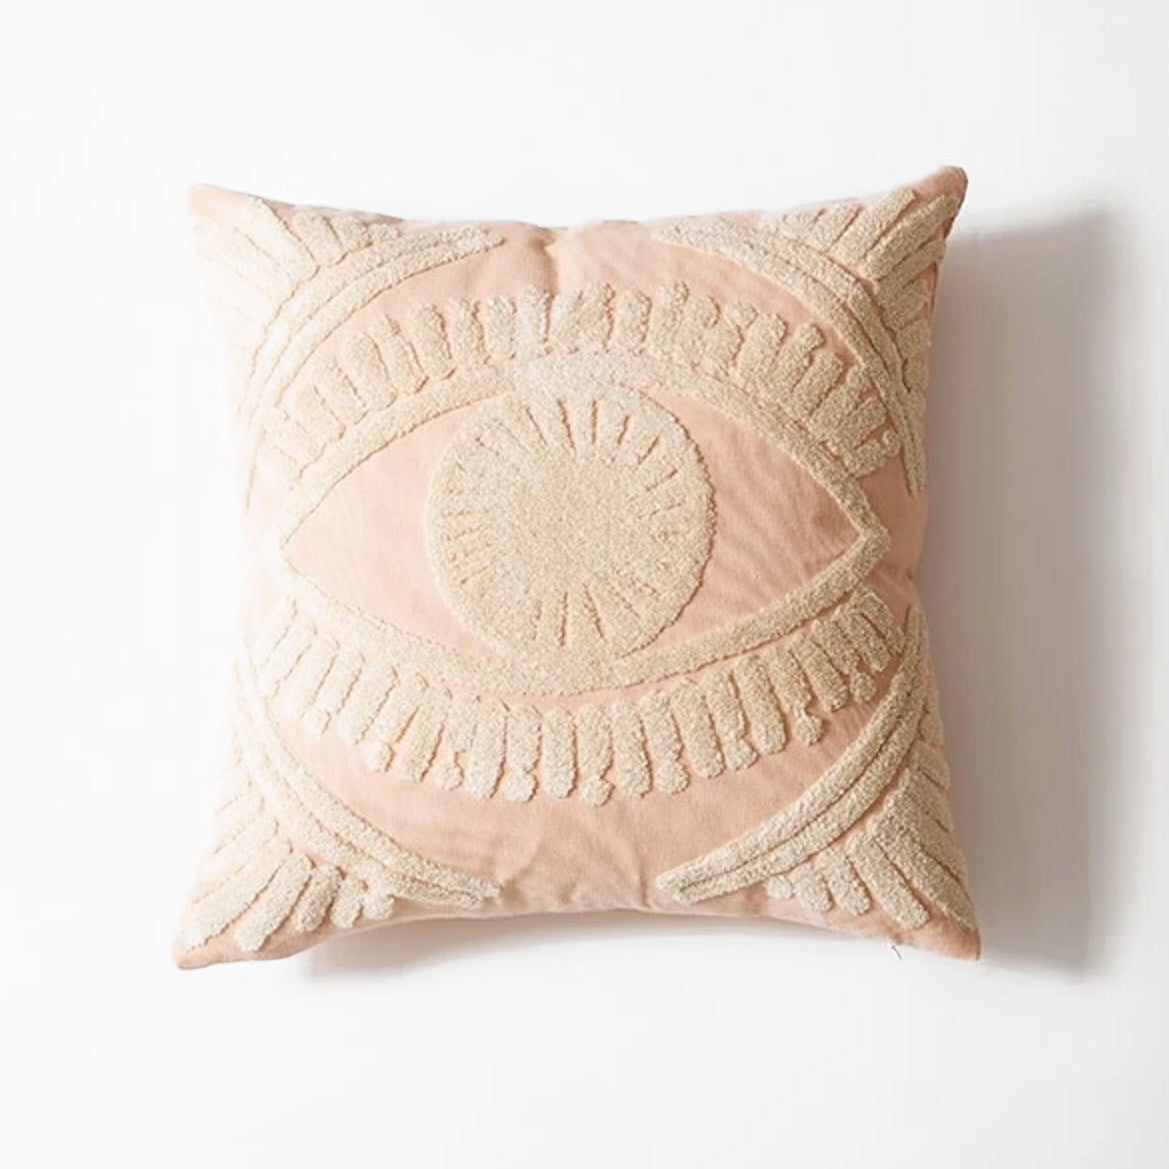 Protective Eye Cushion Cover